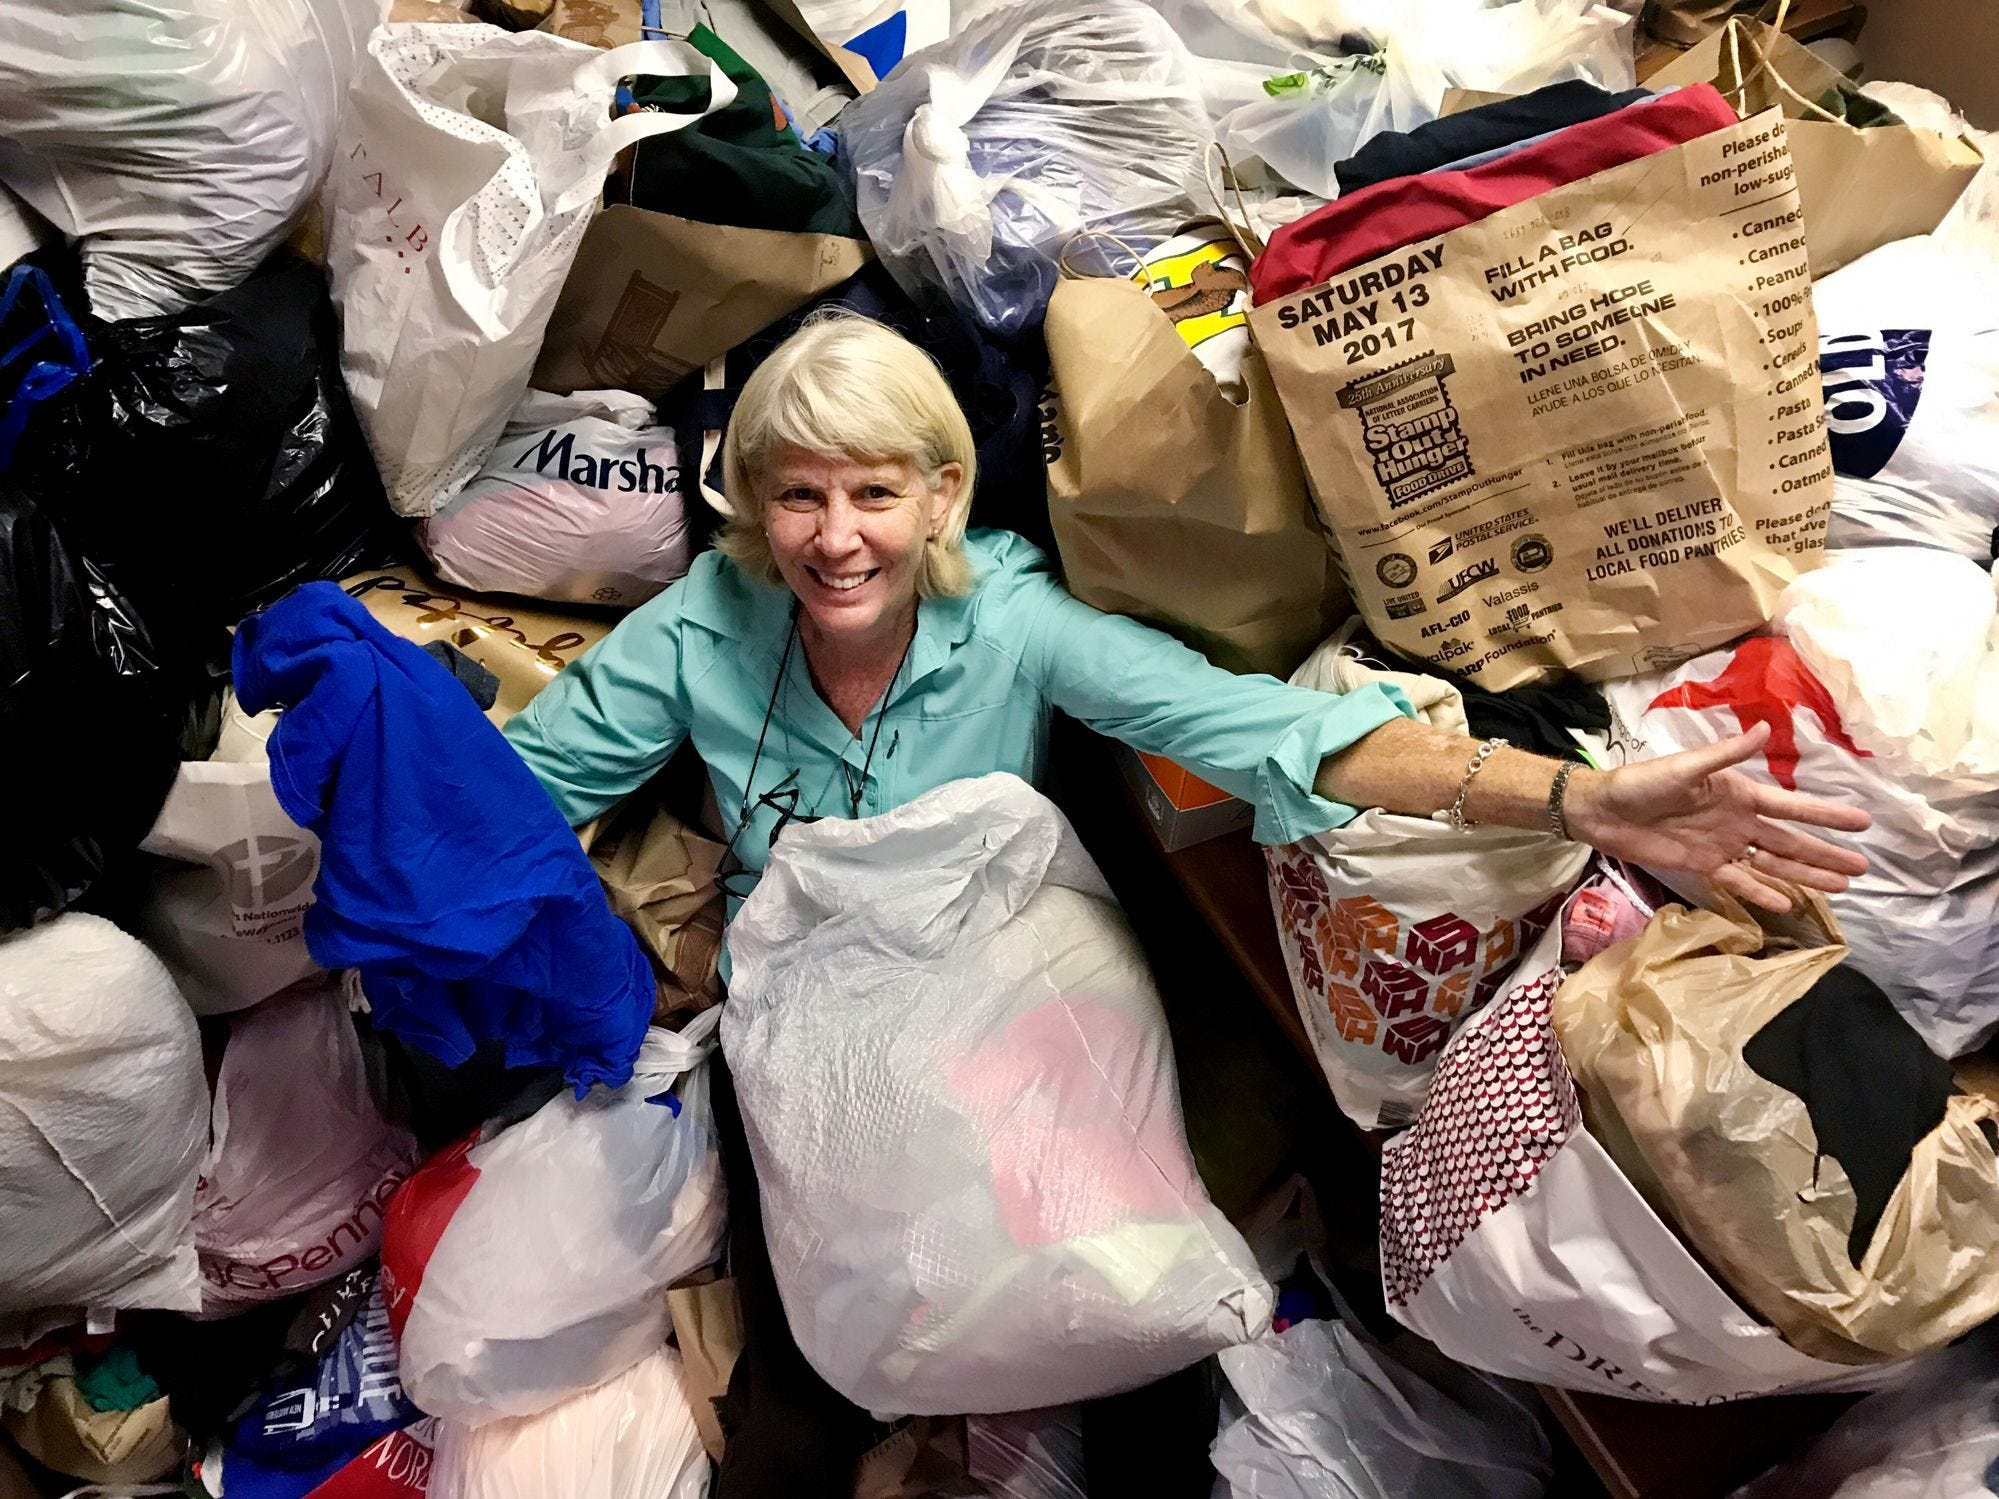 Mary Hance, aka Ms. Cheap, is happily buried in T-shirts that were donated for Ms. Cheap's T-shirt drive for Room in the Inn on June 18, 2017.